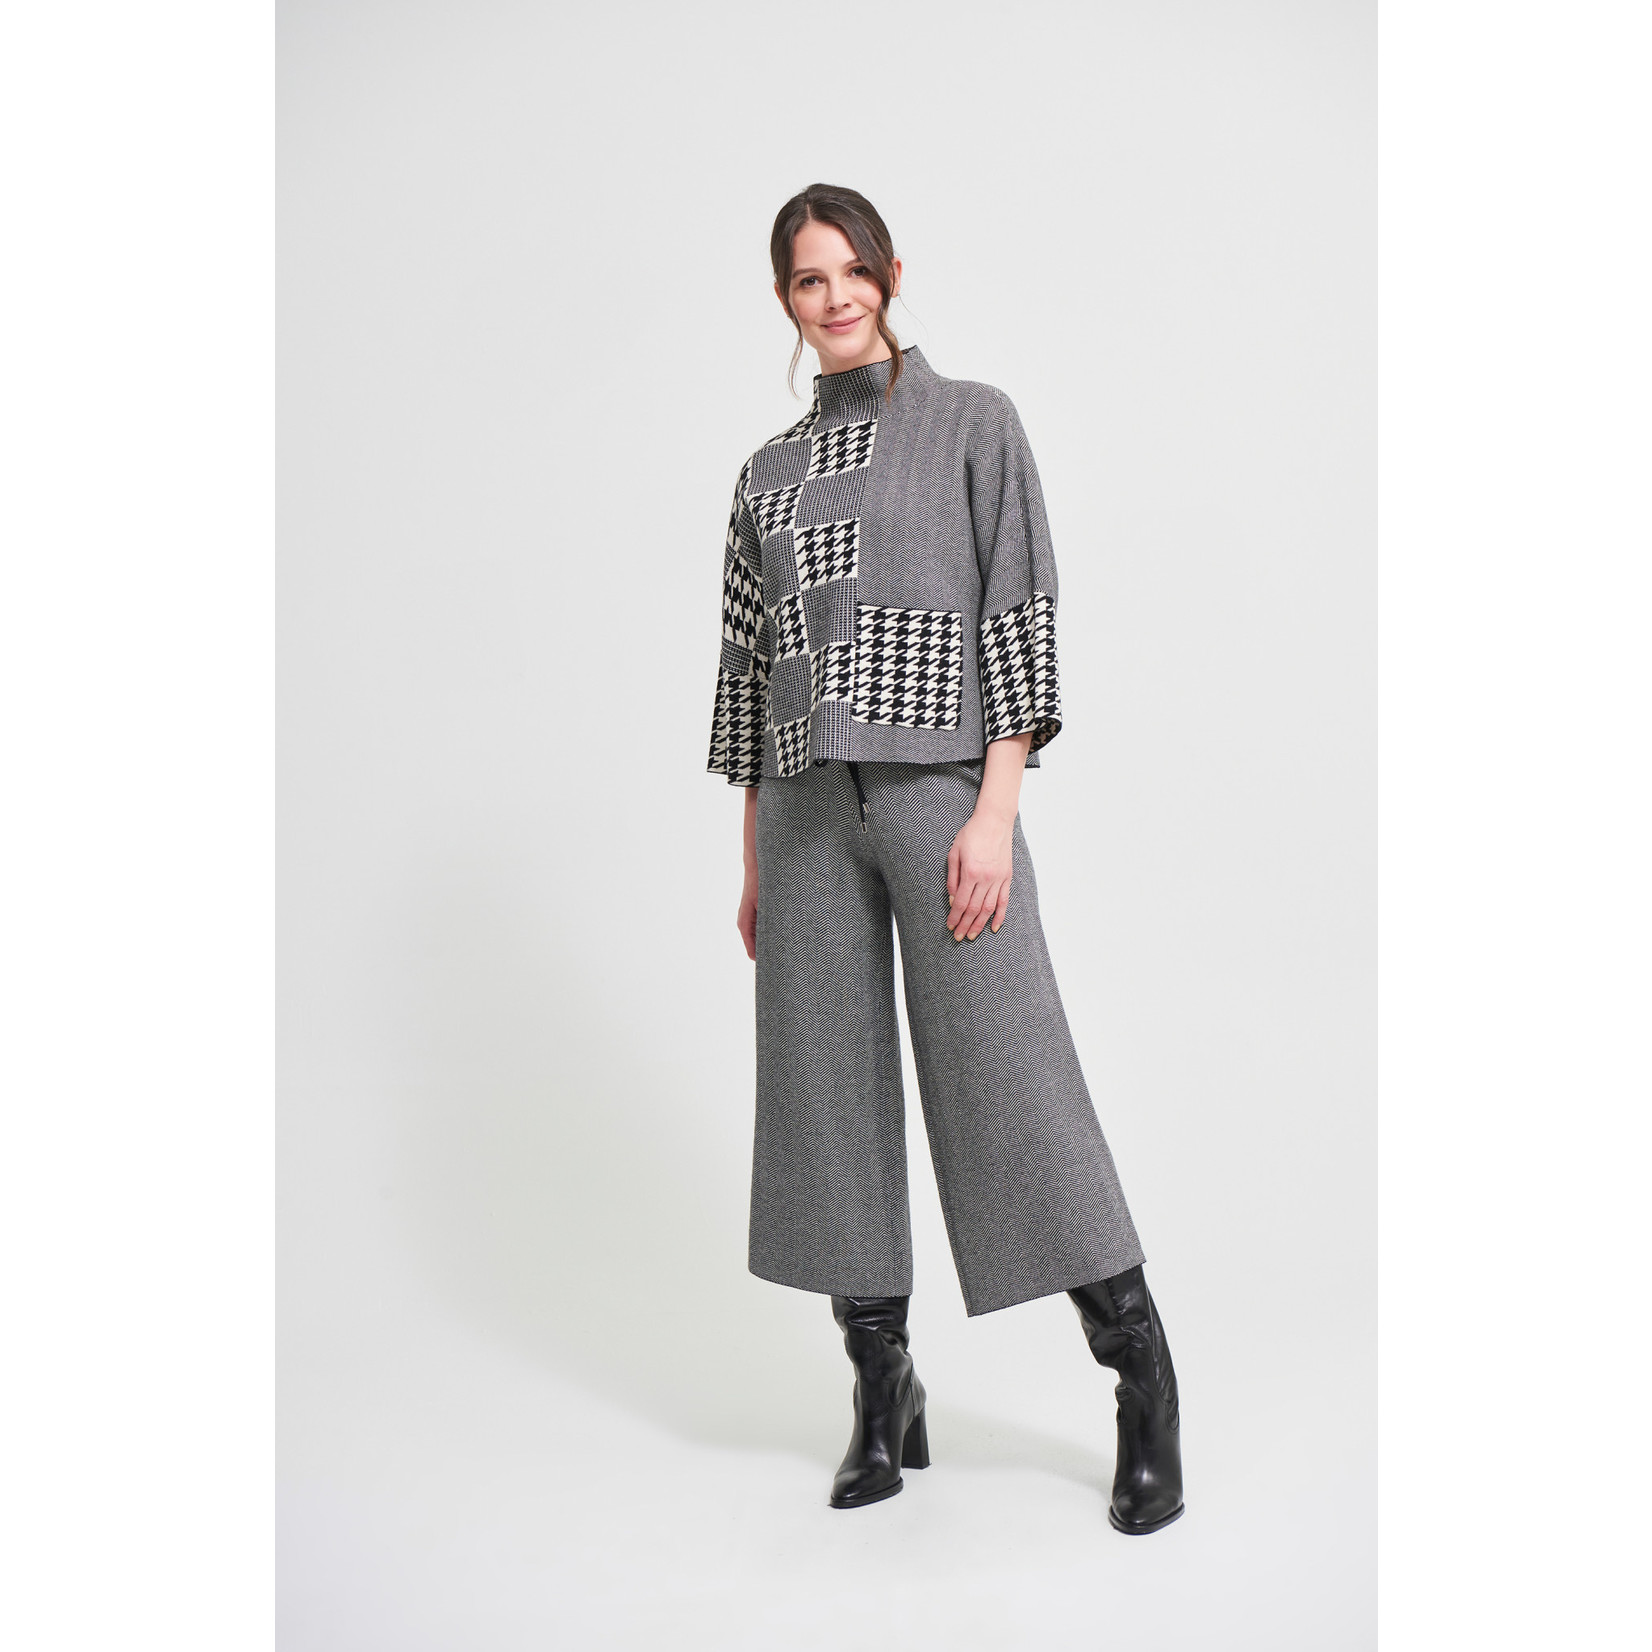 Joseph Ribkoff Houndstooth Culotte Pants Style 213920